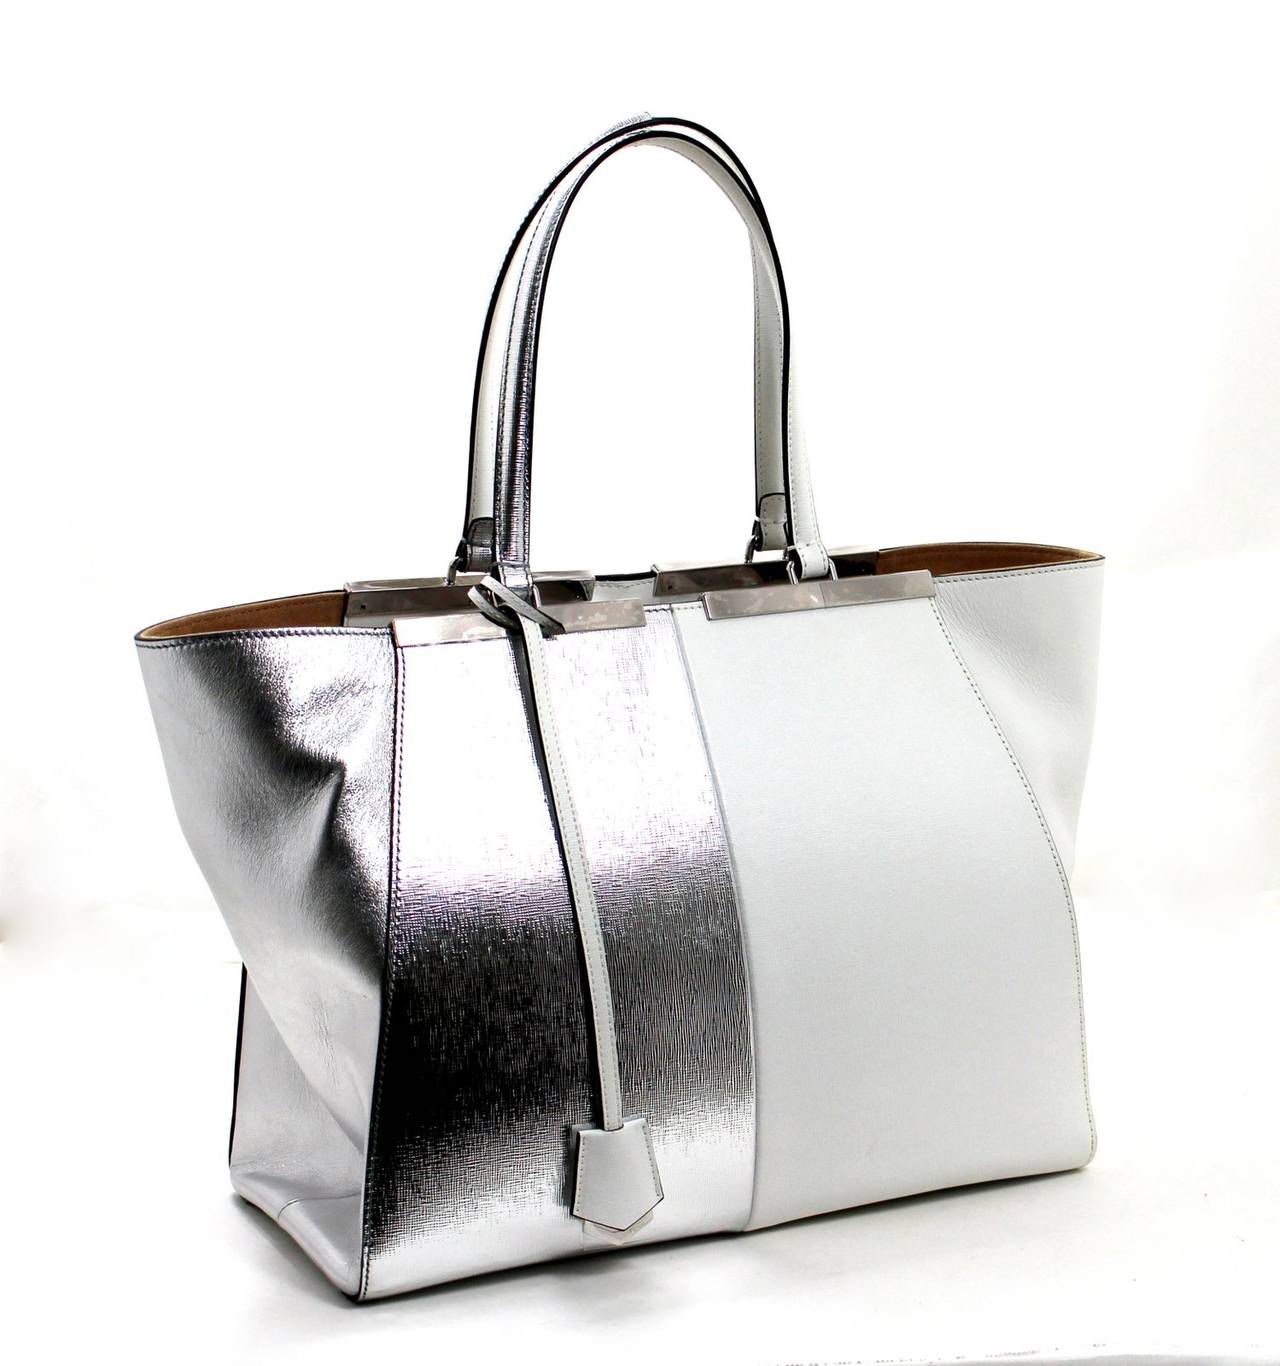 Fendi White and Silver Leather BiColor Trois Jours Tote Bag 3